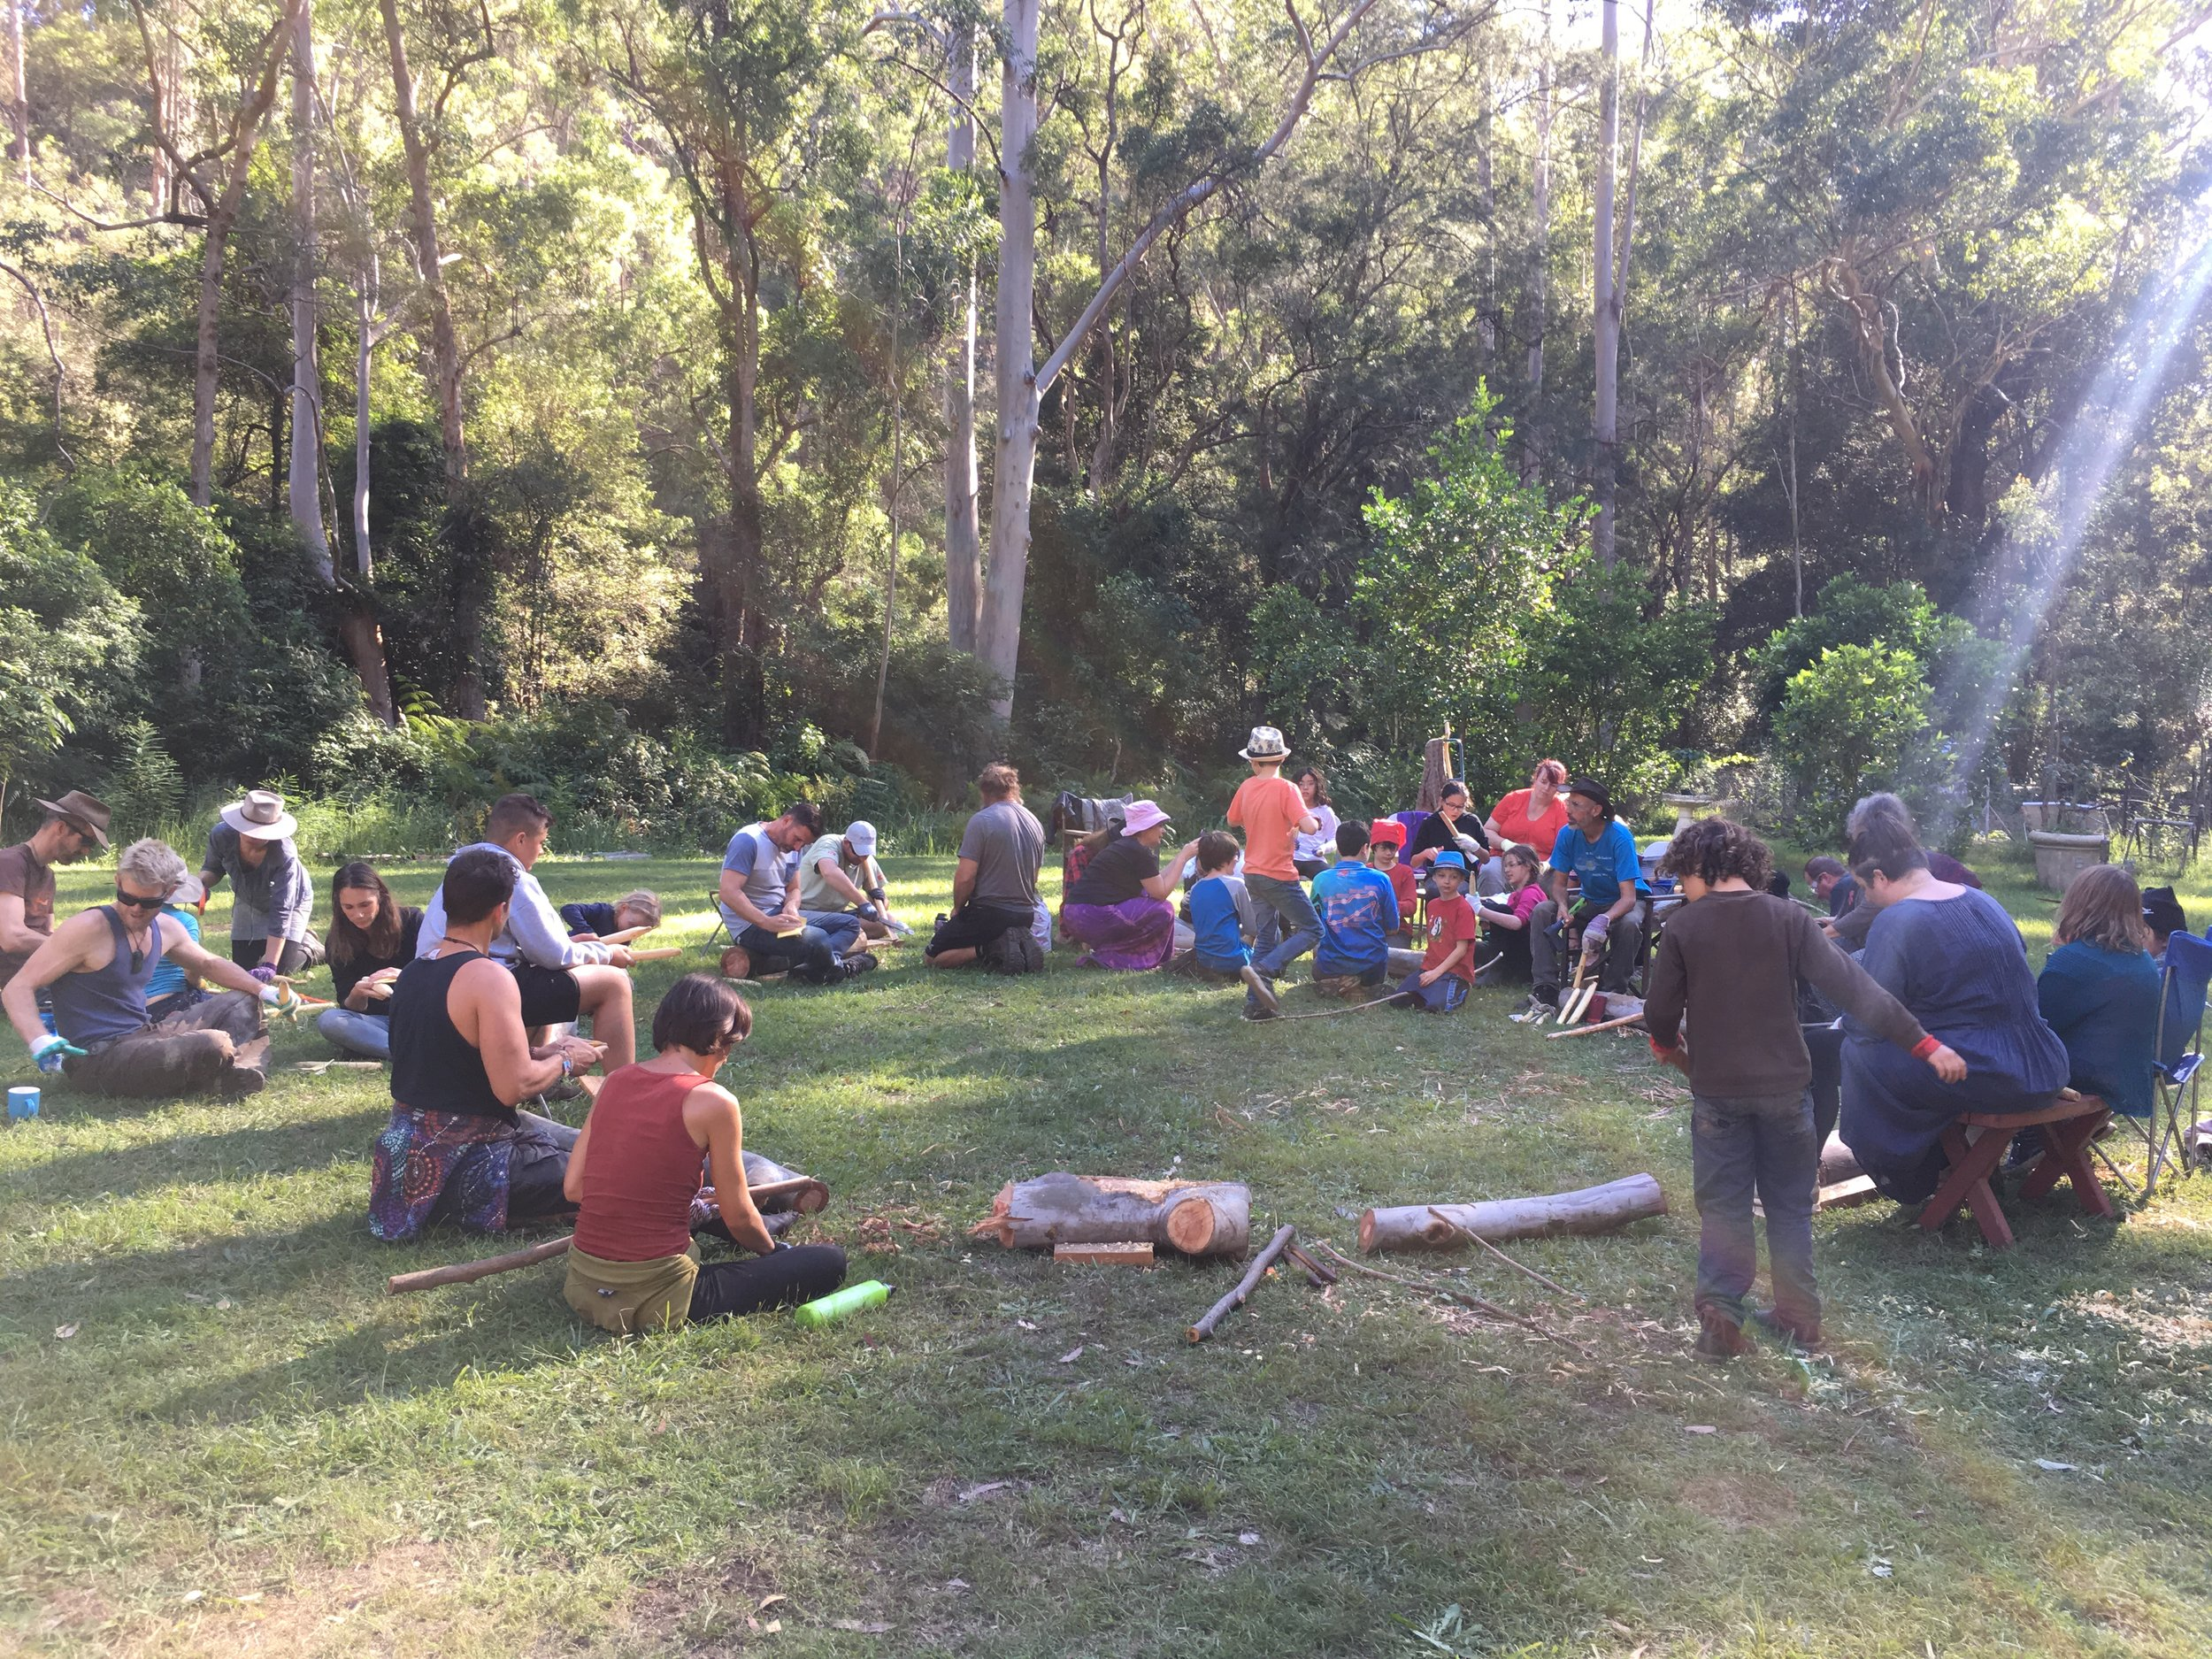 Participants enjoying themselves in the bush at an Aboriginal cultural woodcrafting workshop making clap sticks.